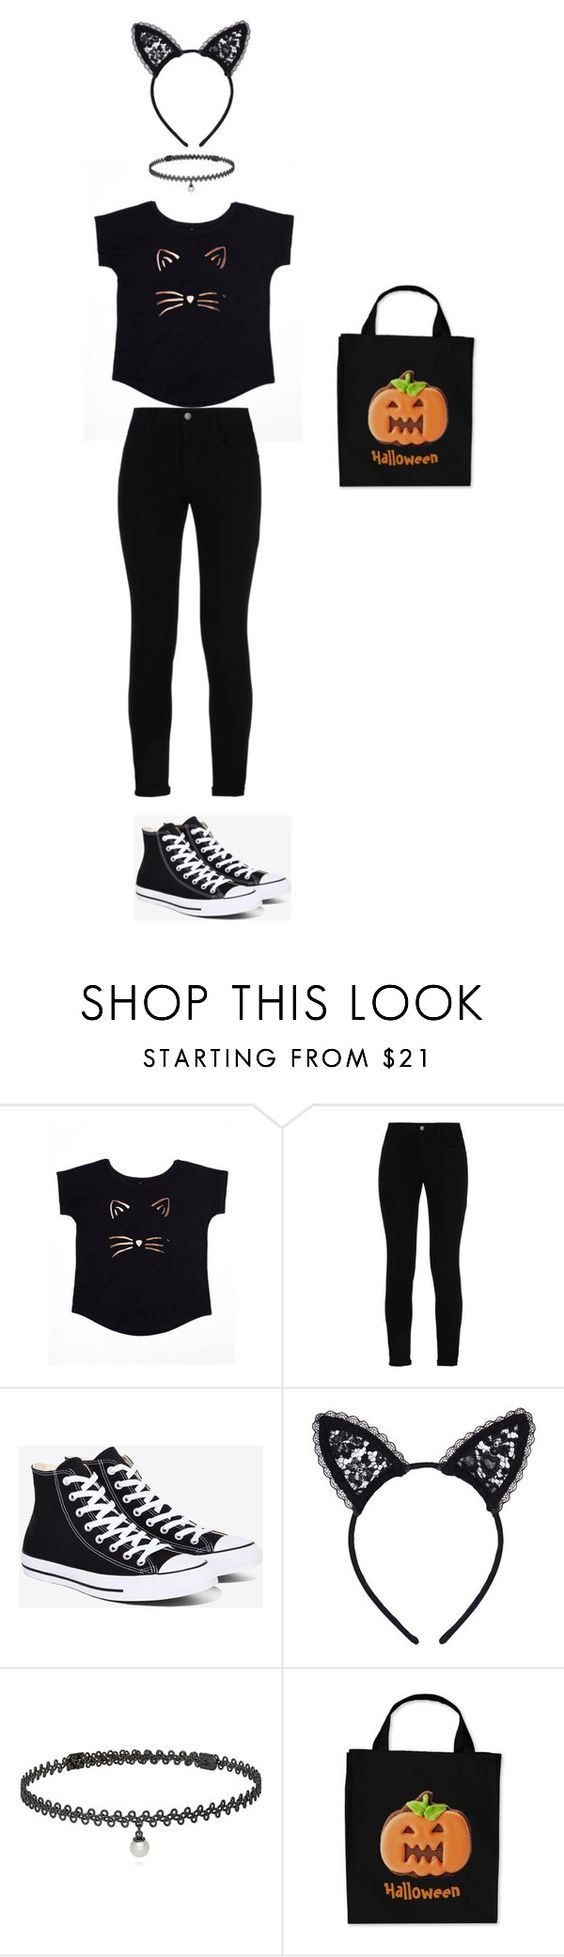 """""""Late Halloween"""" by animeworld ❤ liked on Polyvore featuring STELLA McCARTNEY, Converse, Fleur du Mal and BERRICLE"""